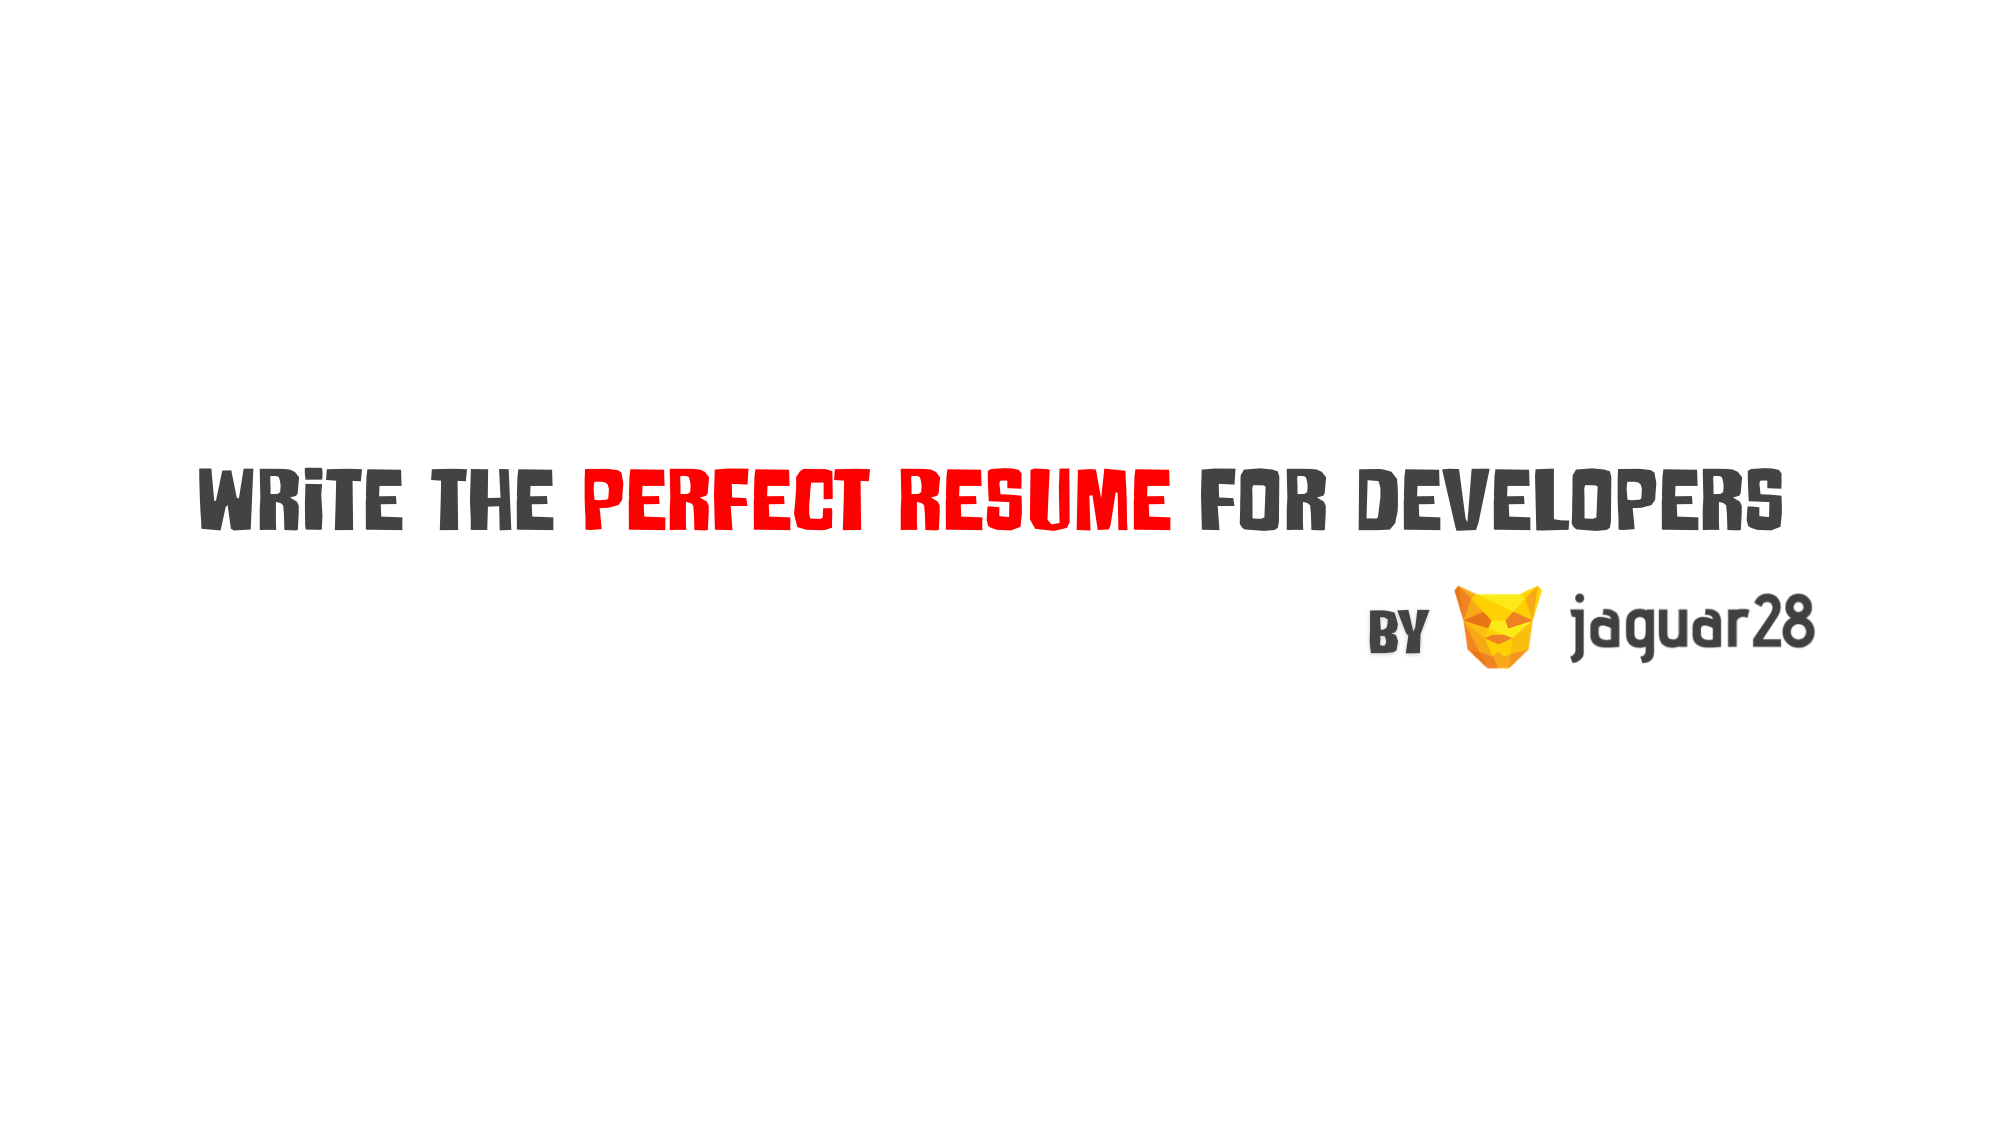 Write The Perfect Resume For Developers